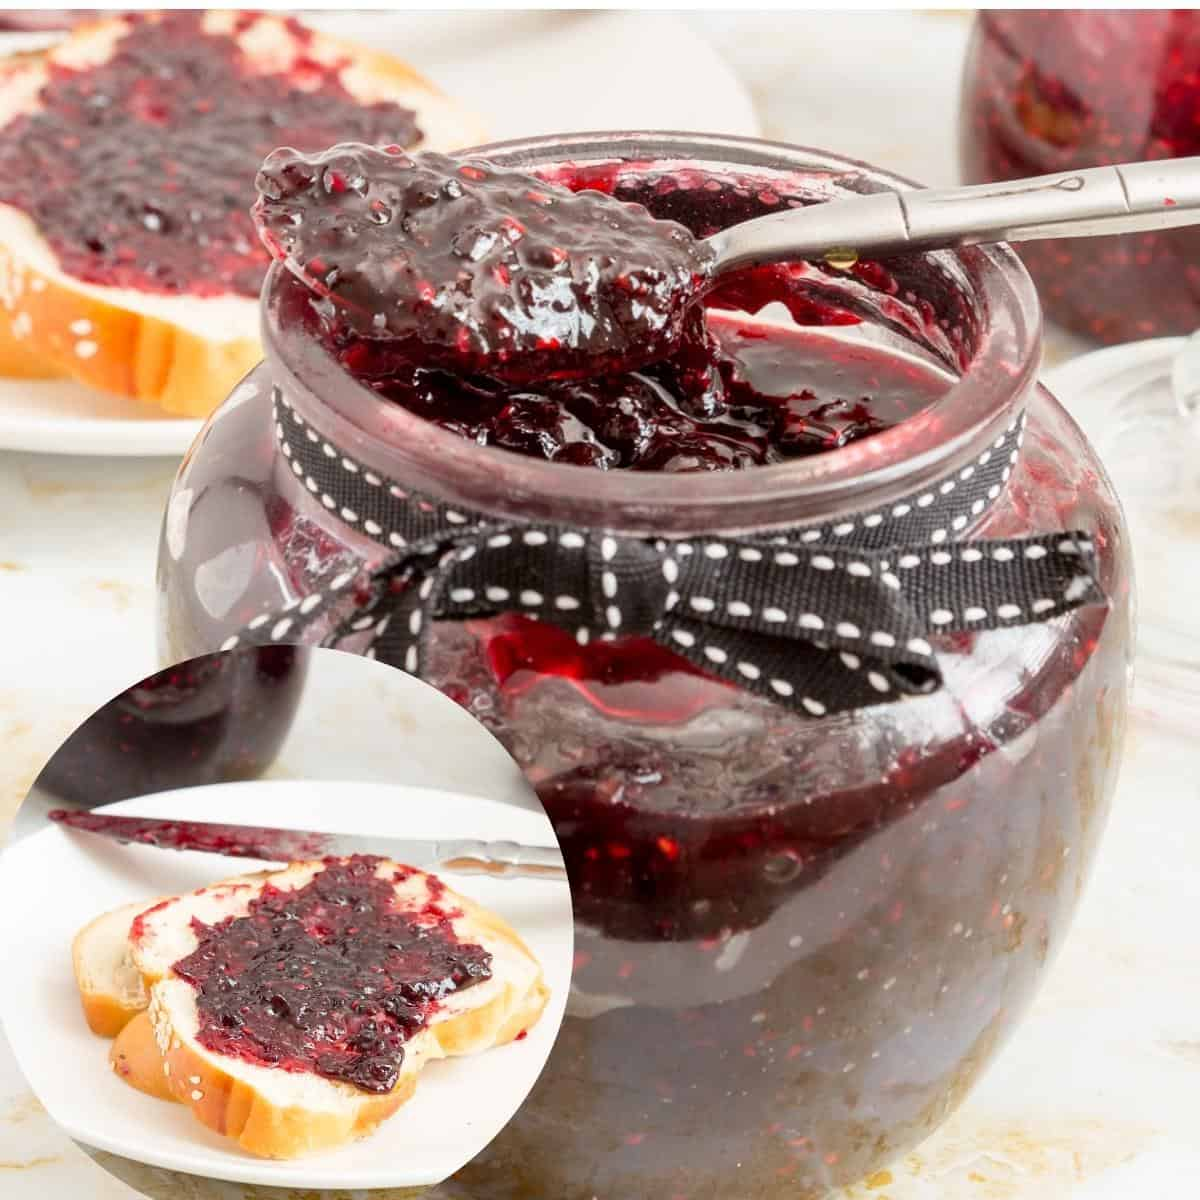 Berry jam in a spoon and slice of bread.